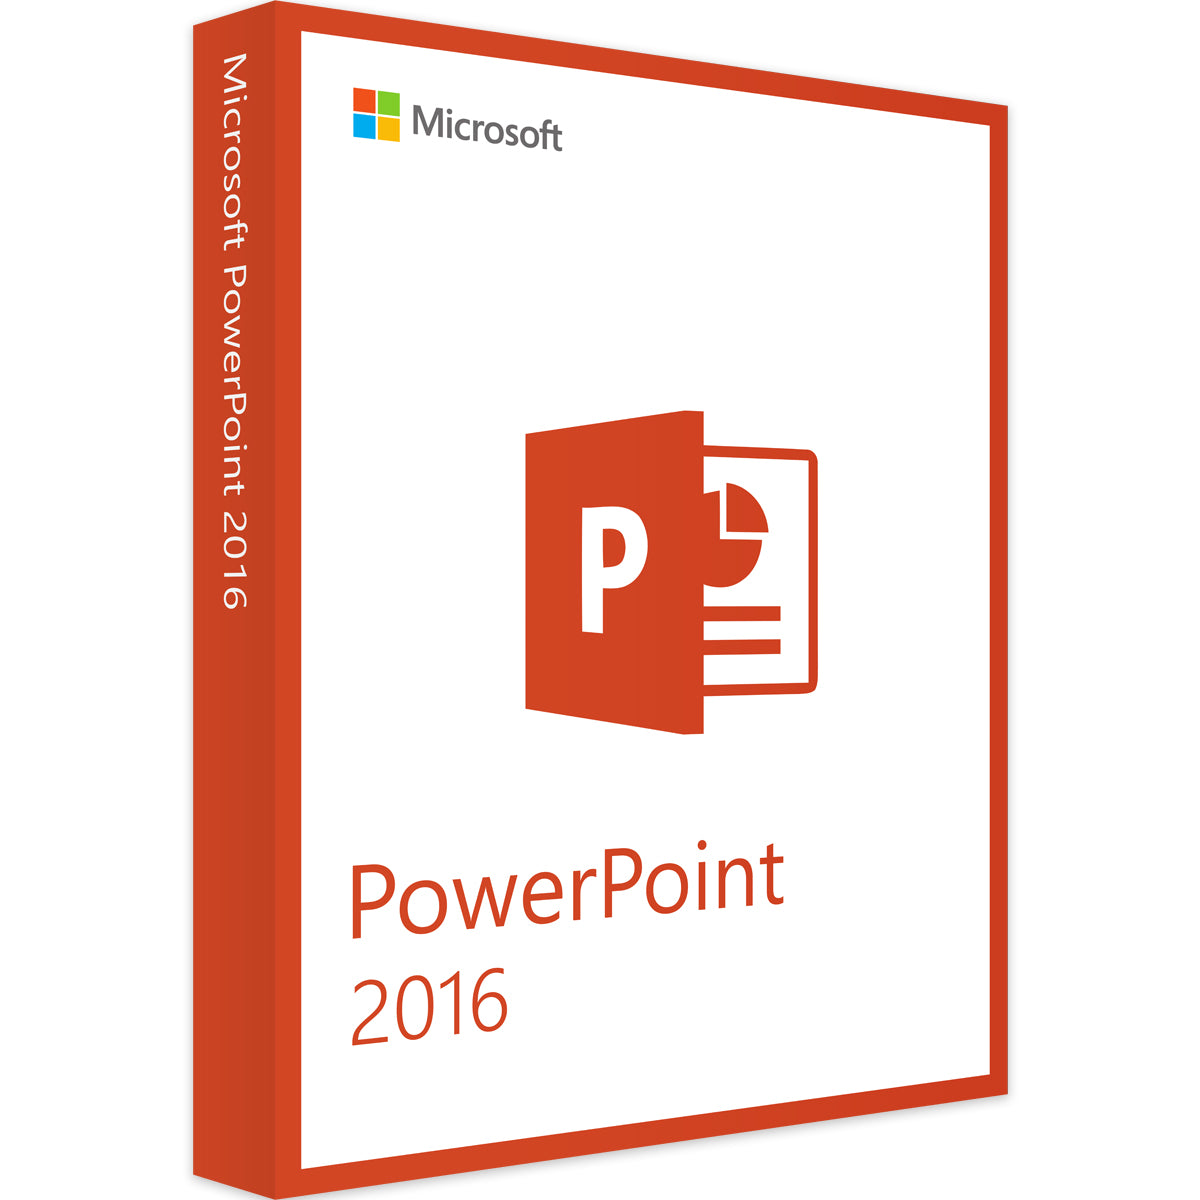 Microsoft Powerpoint 2016 - Software-Markt data-zoom=